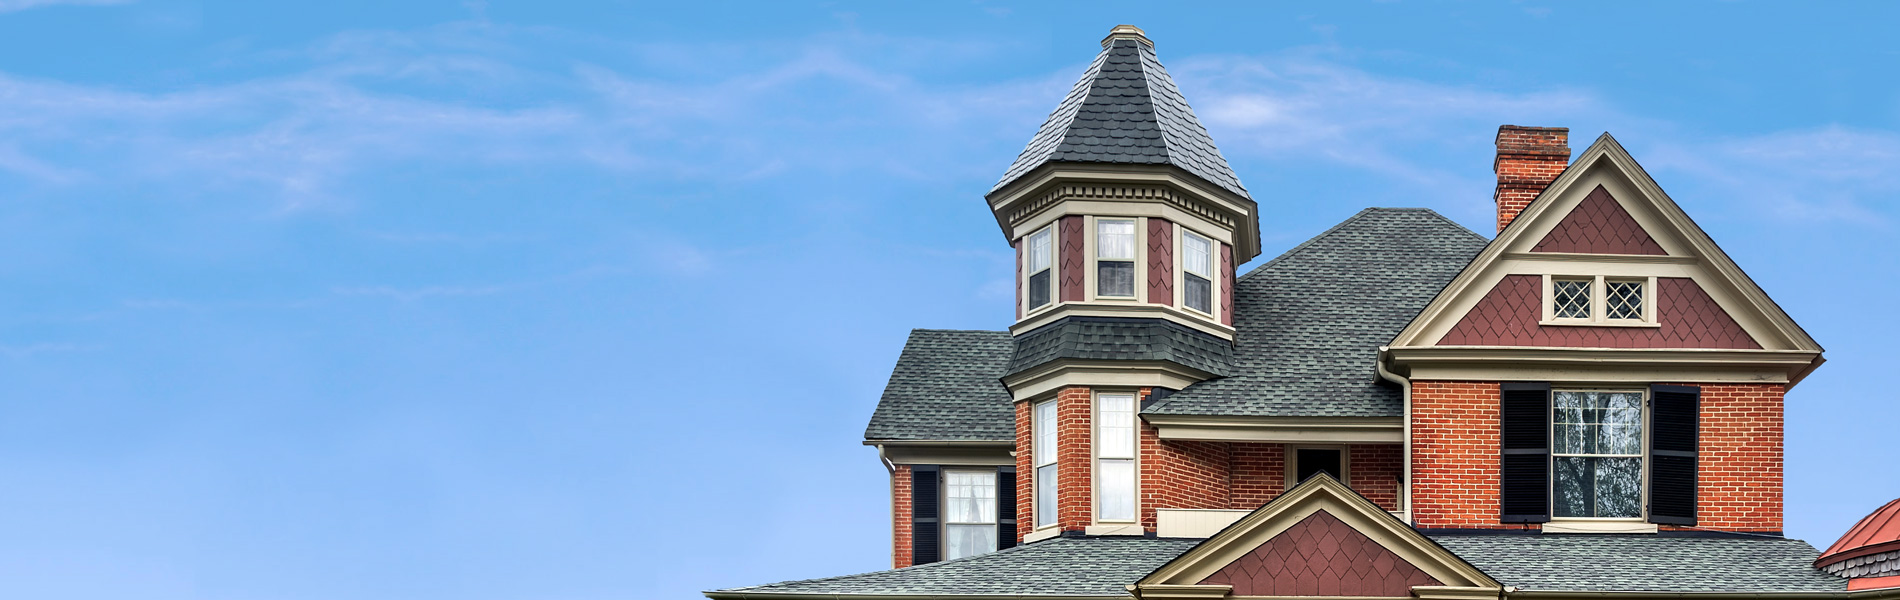 St Clair Shores Historic Home Painting